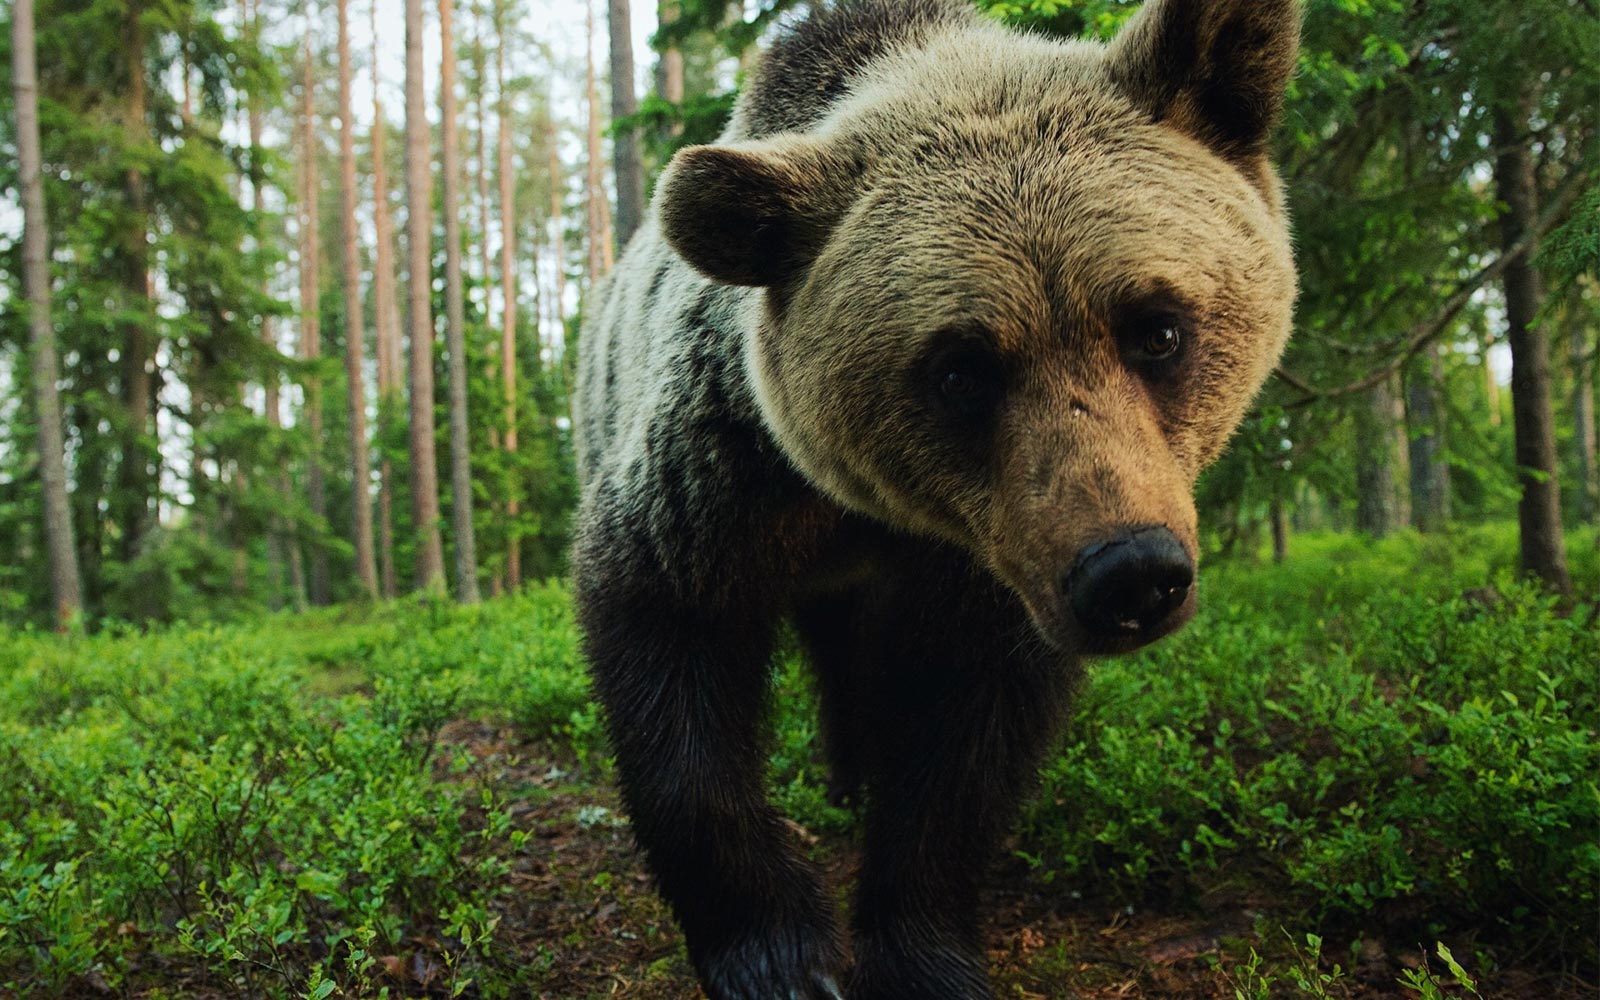 A Journey to the Finnish and Russian Border to Photograph Bears